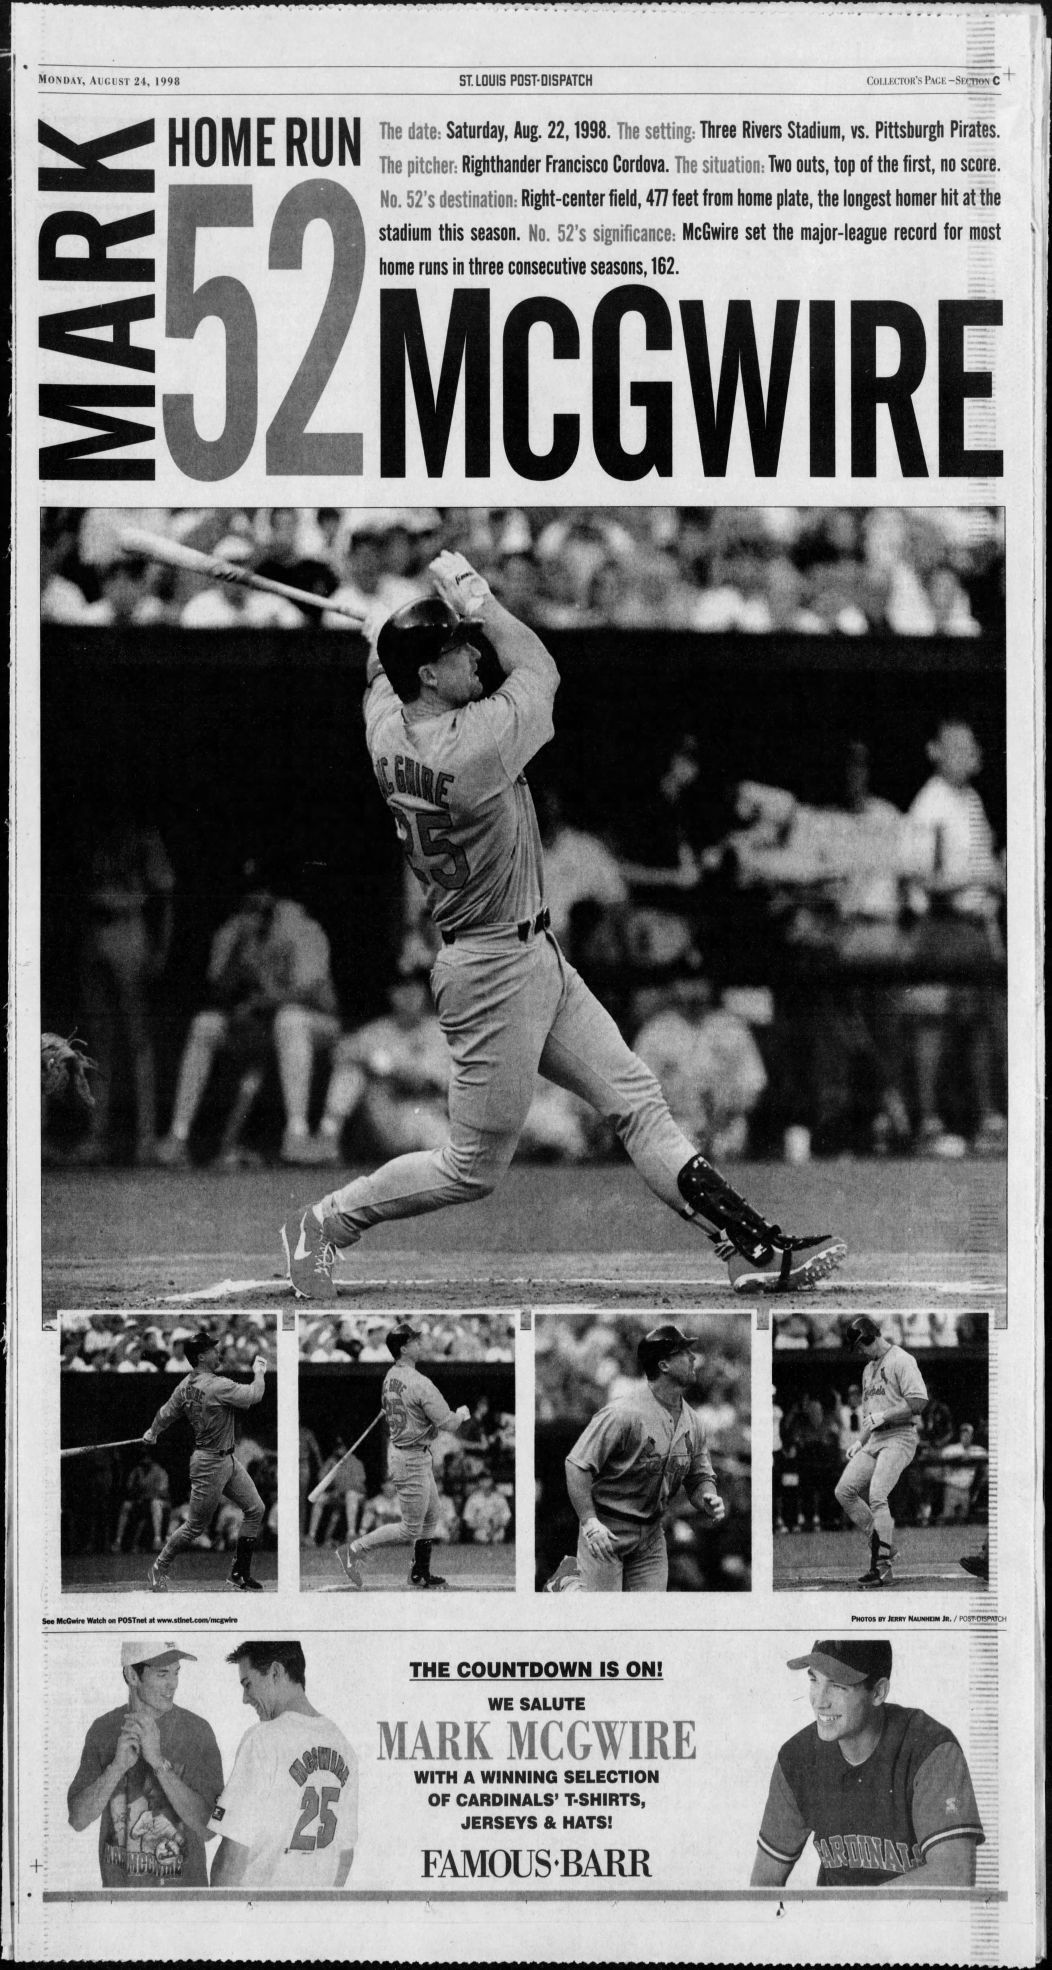 20 years ago: McGwire hits 70 and is saluted as 'the new